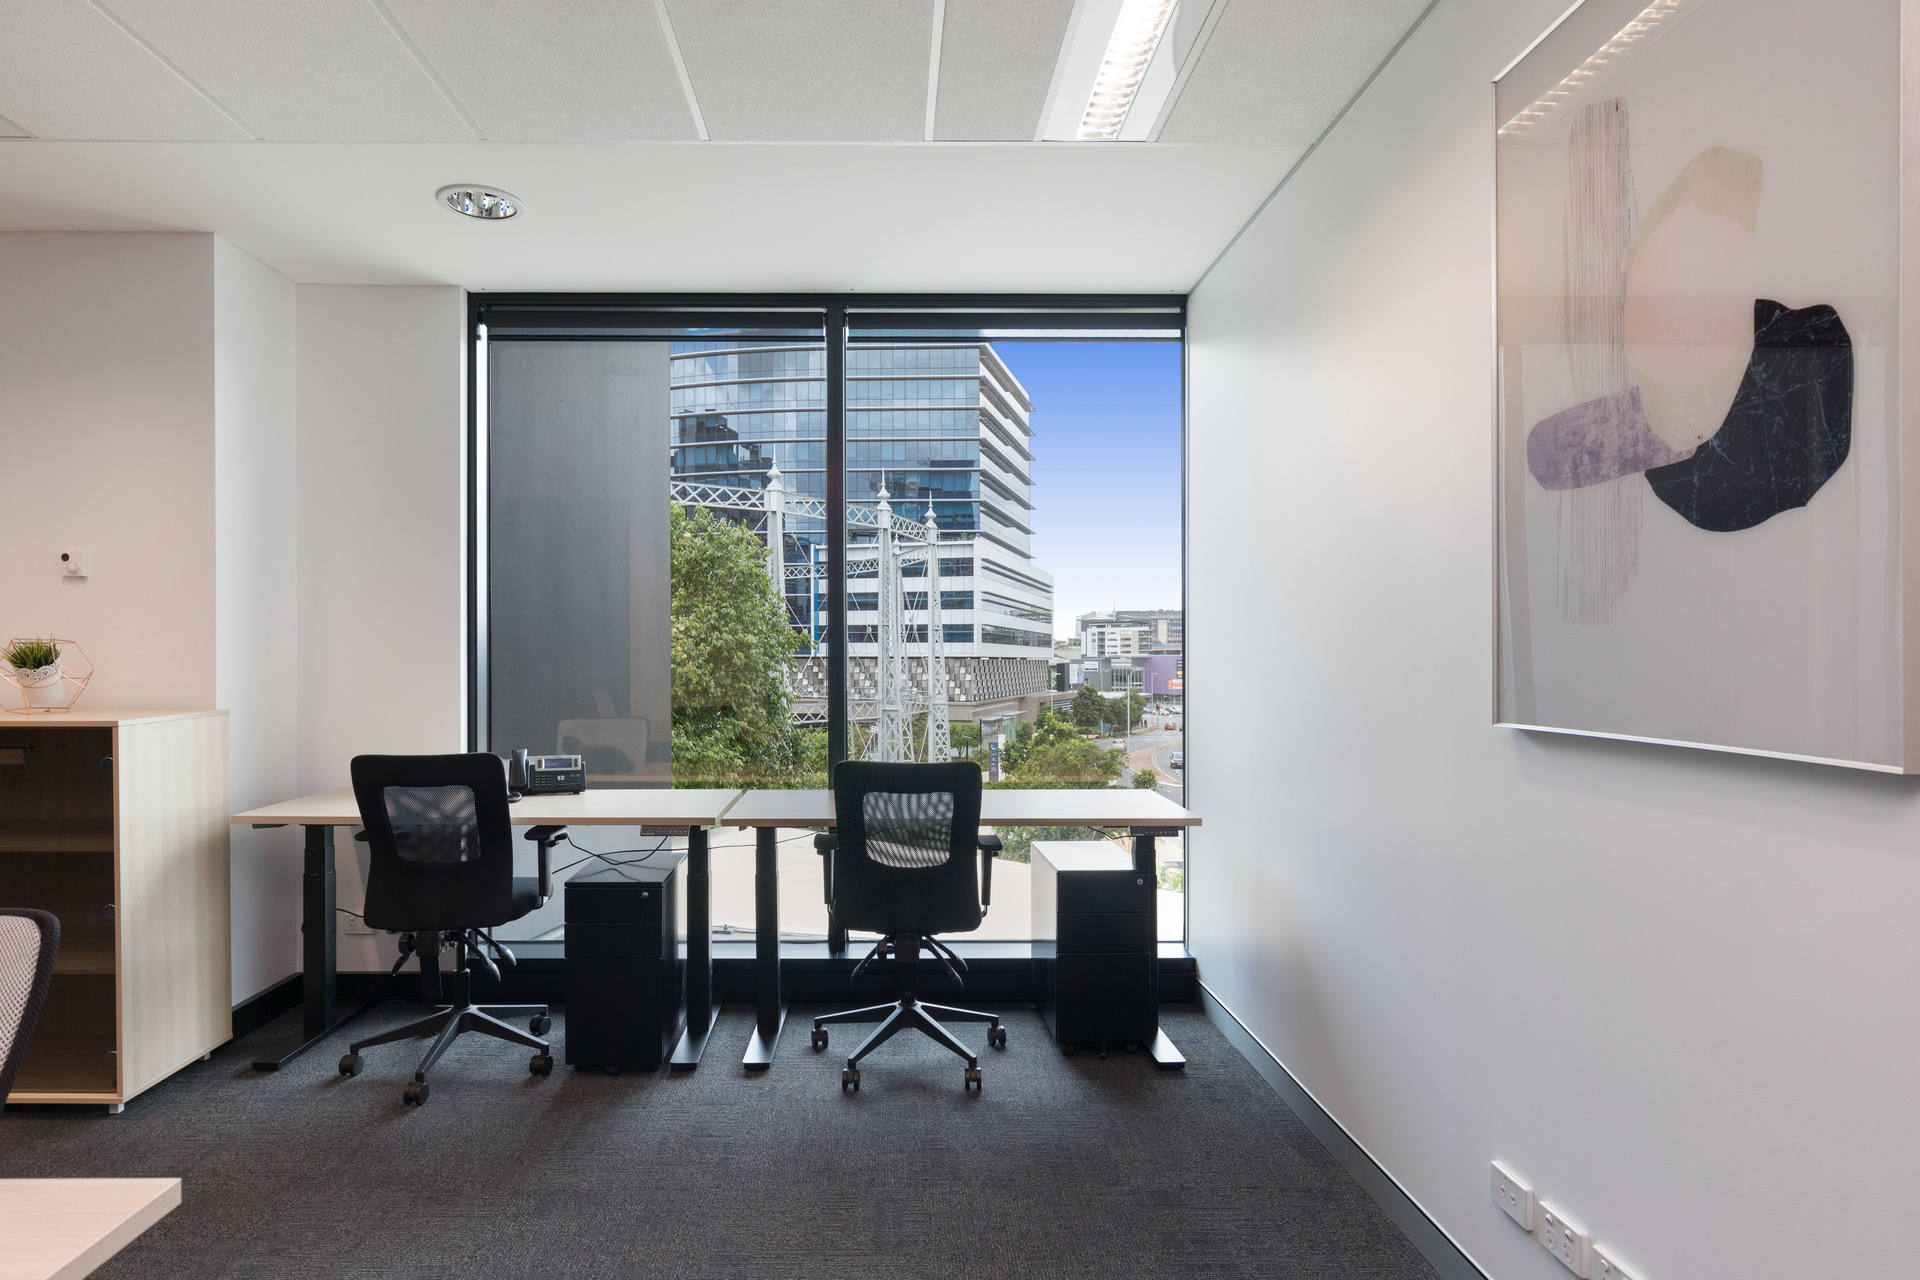 2 person Gasworks office just $275p/w (+GST) - all inclusive flat fee